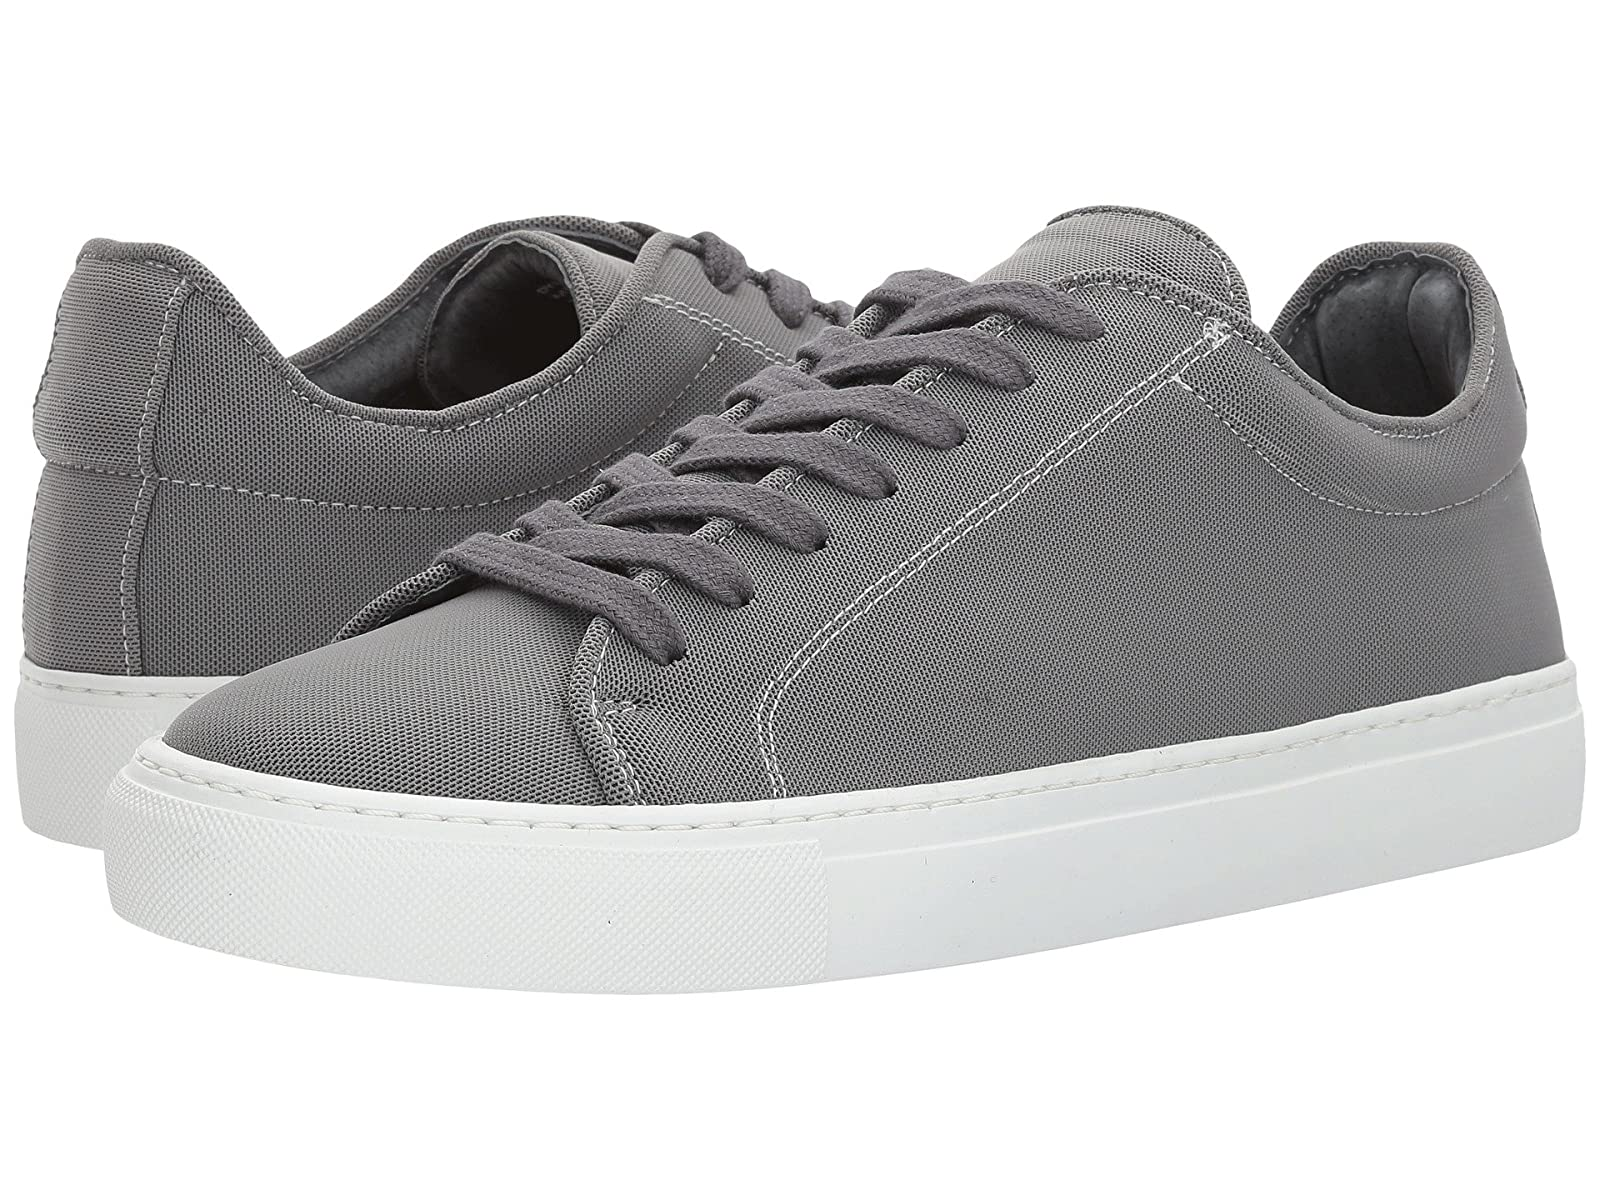 Supply Lab DylanCheap and distinctive eye-catching shoes